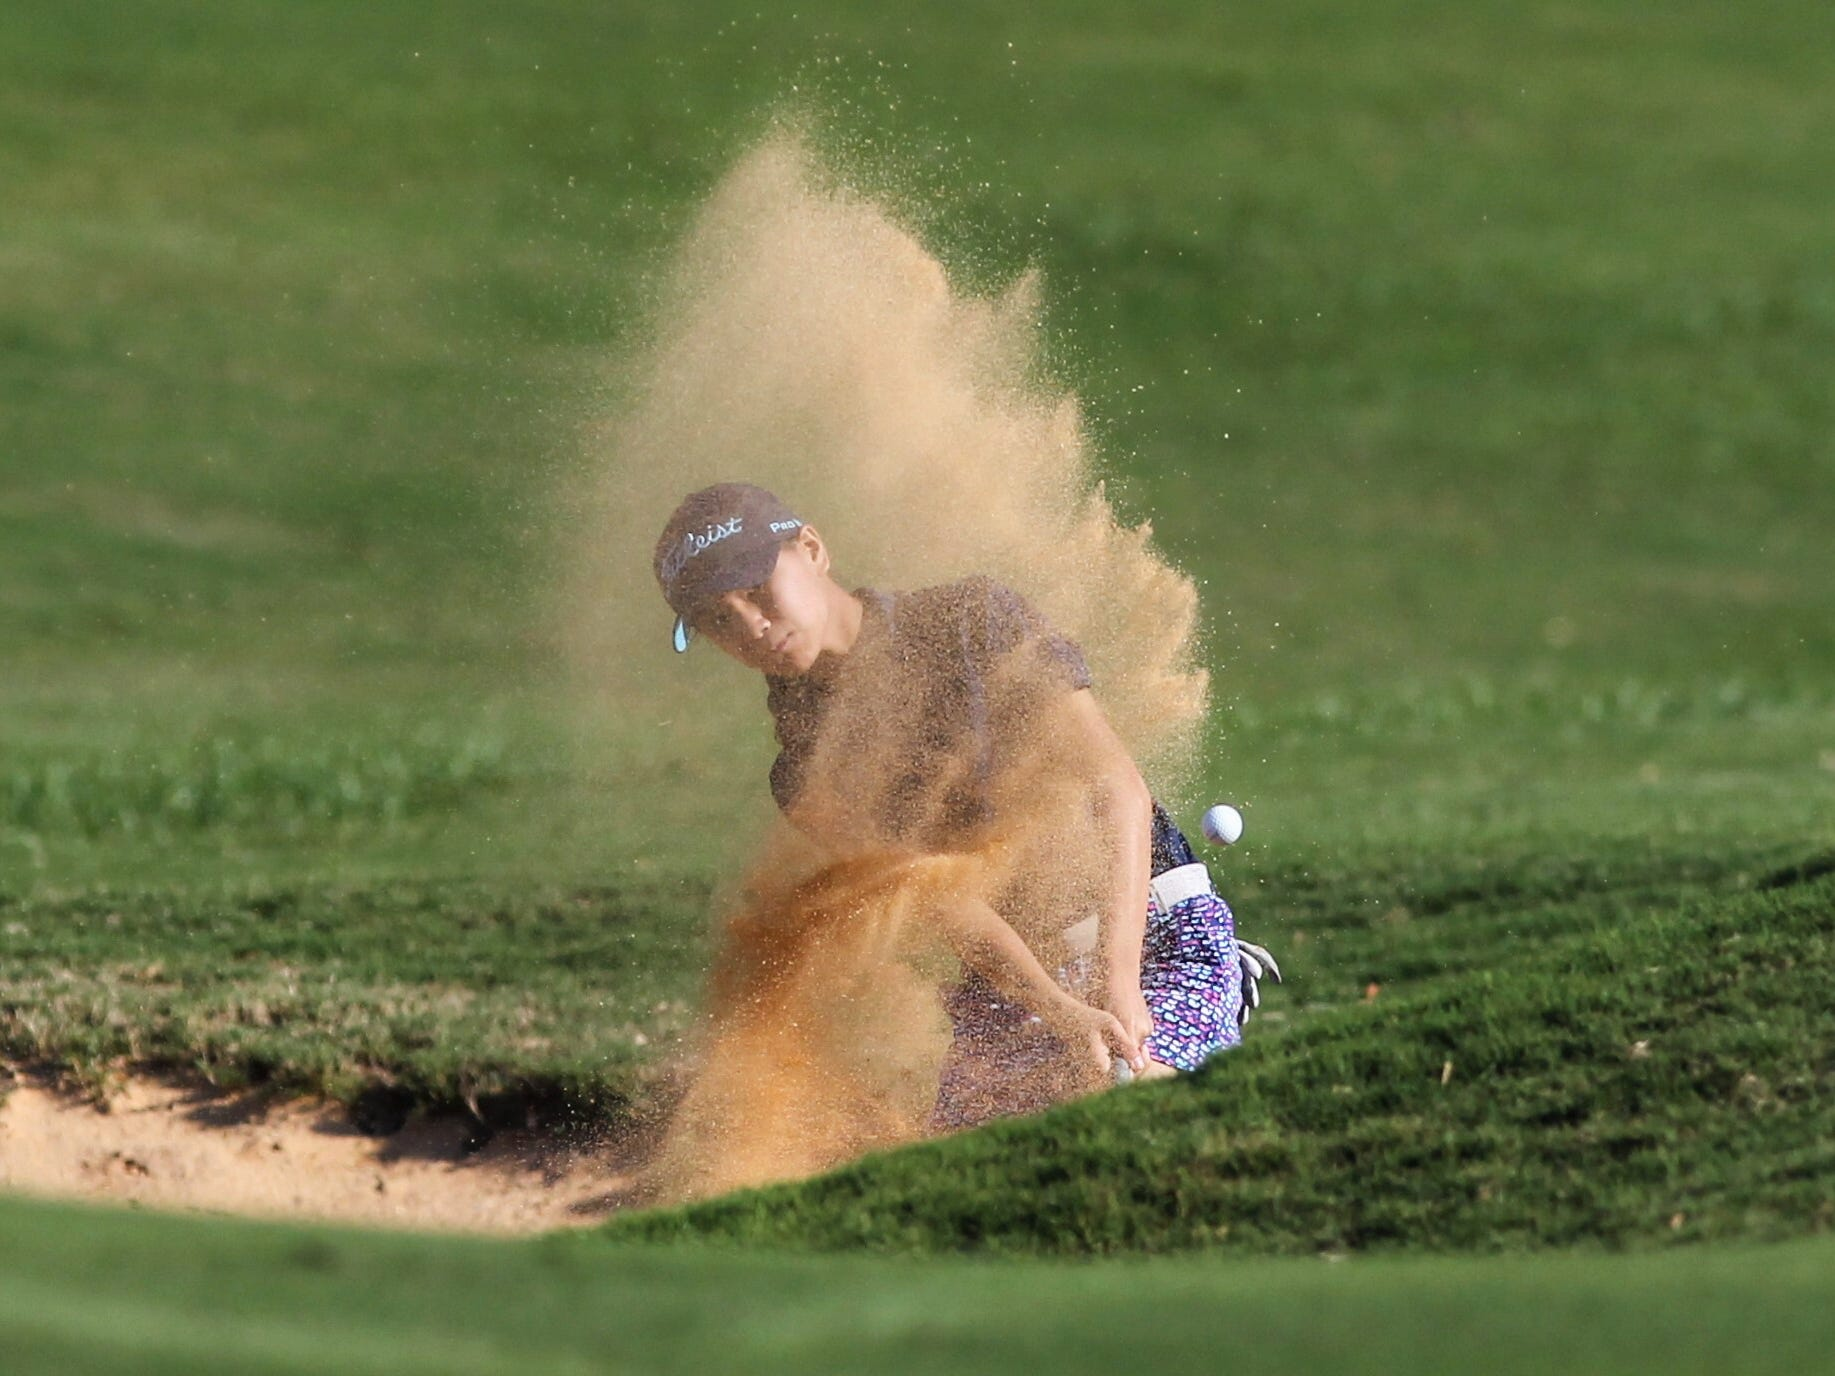 Community Christian's Tynley Cotton chips out of a bunker during the District 1-1A boys and girls golf tournaments at Southwood Golf Club.